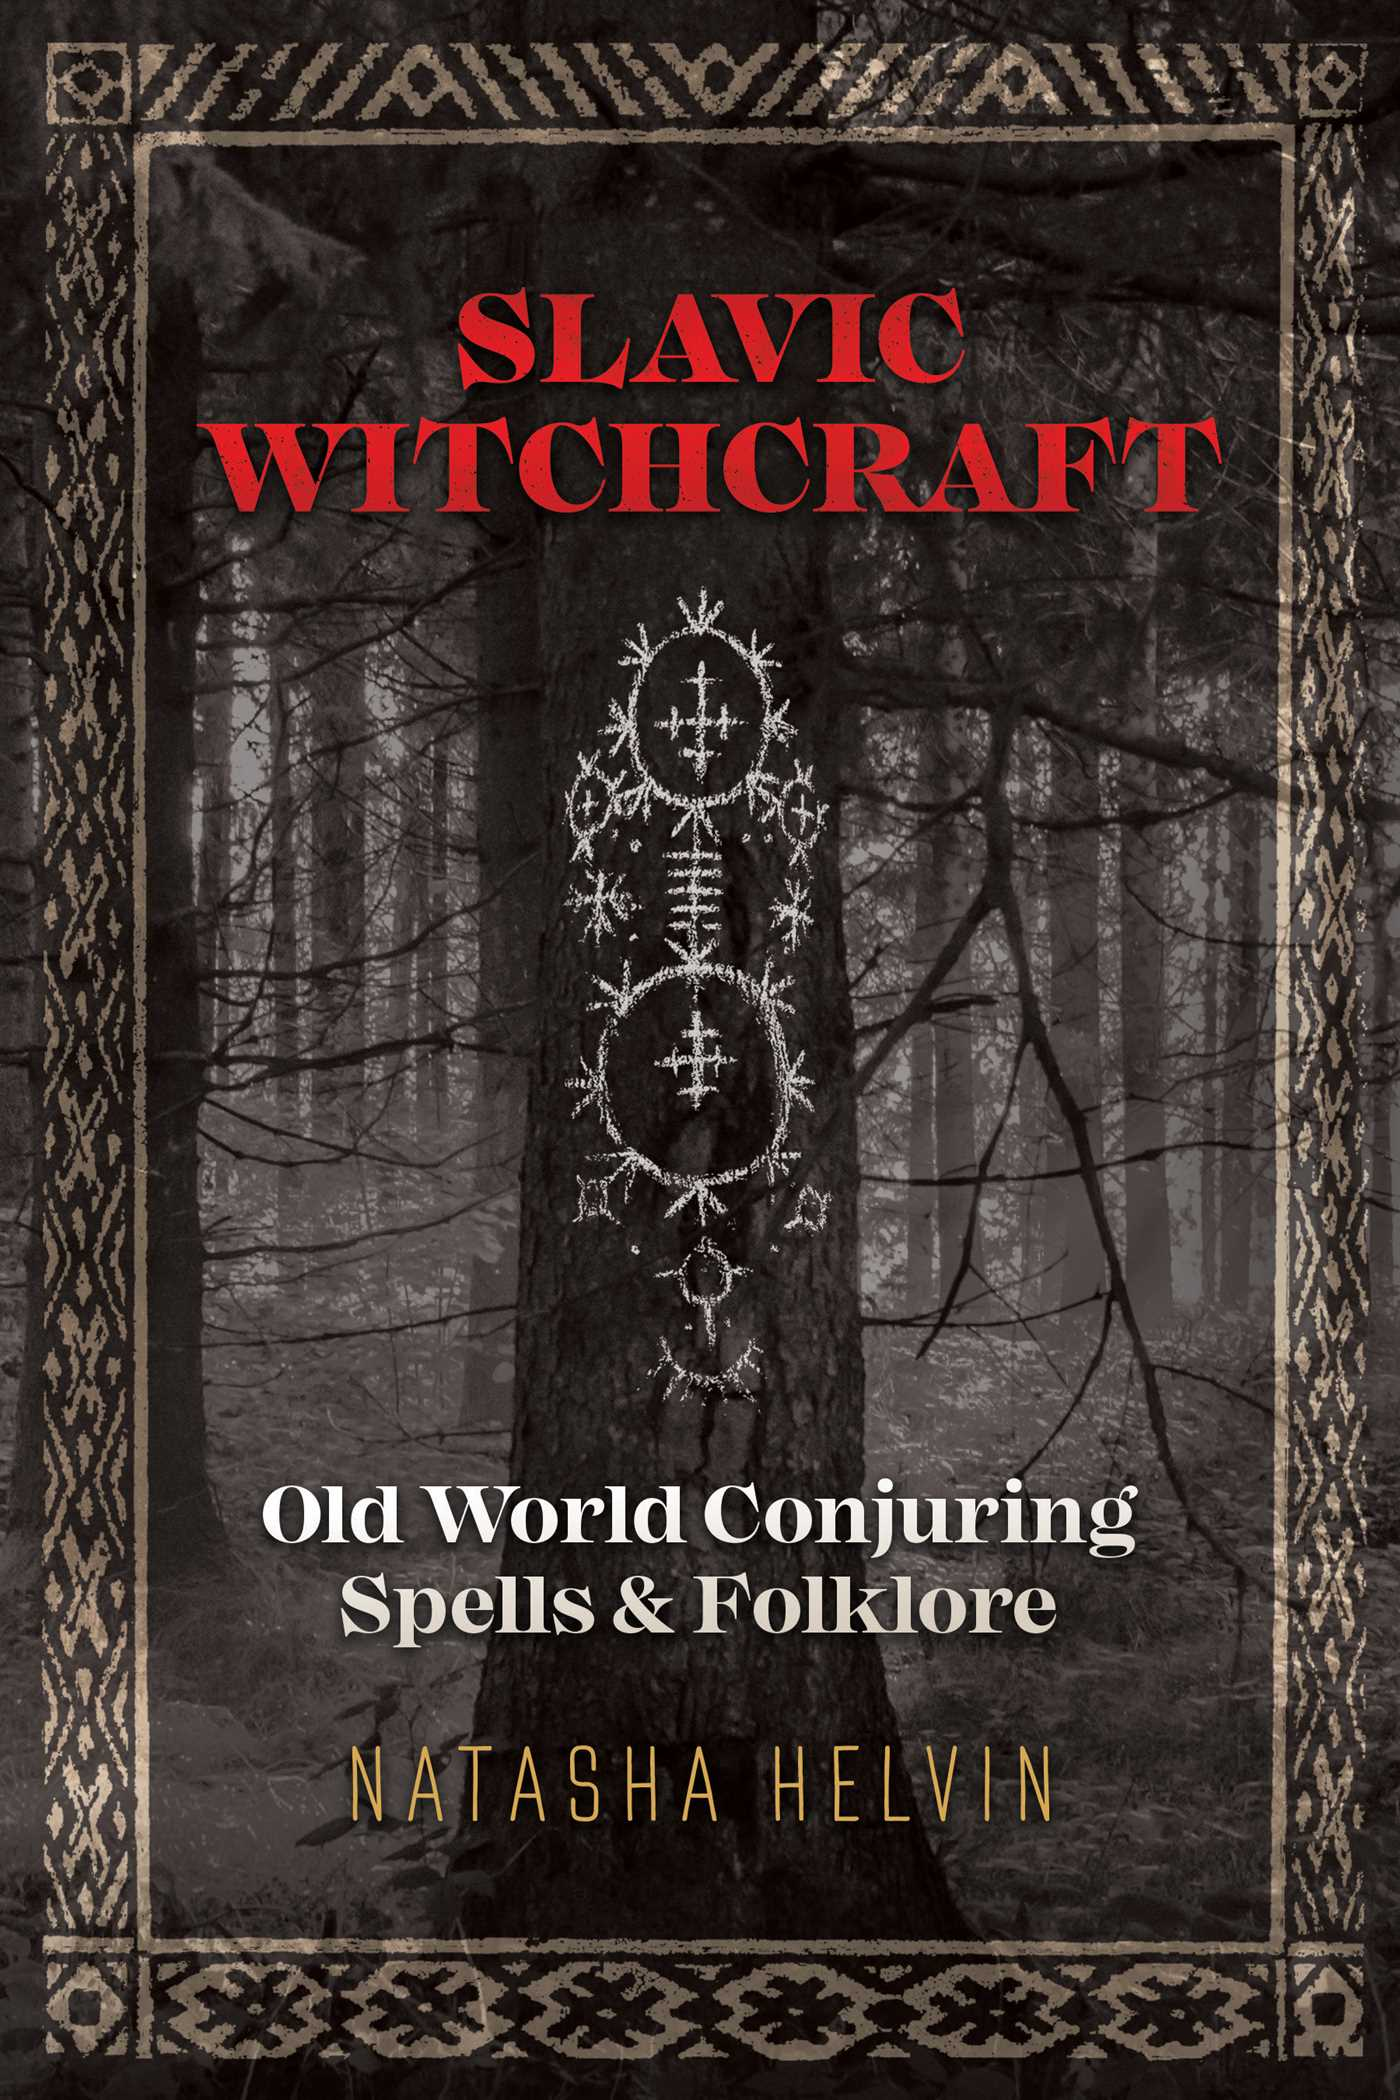 Slavic Witchcraft | Book by Natasha Helvin | Official